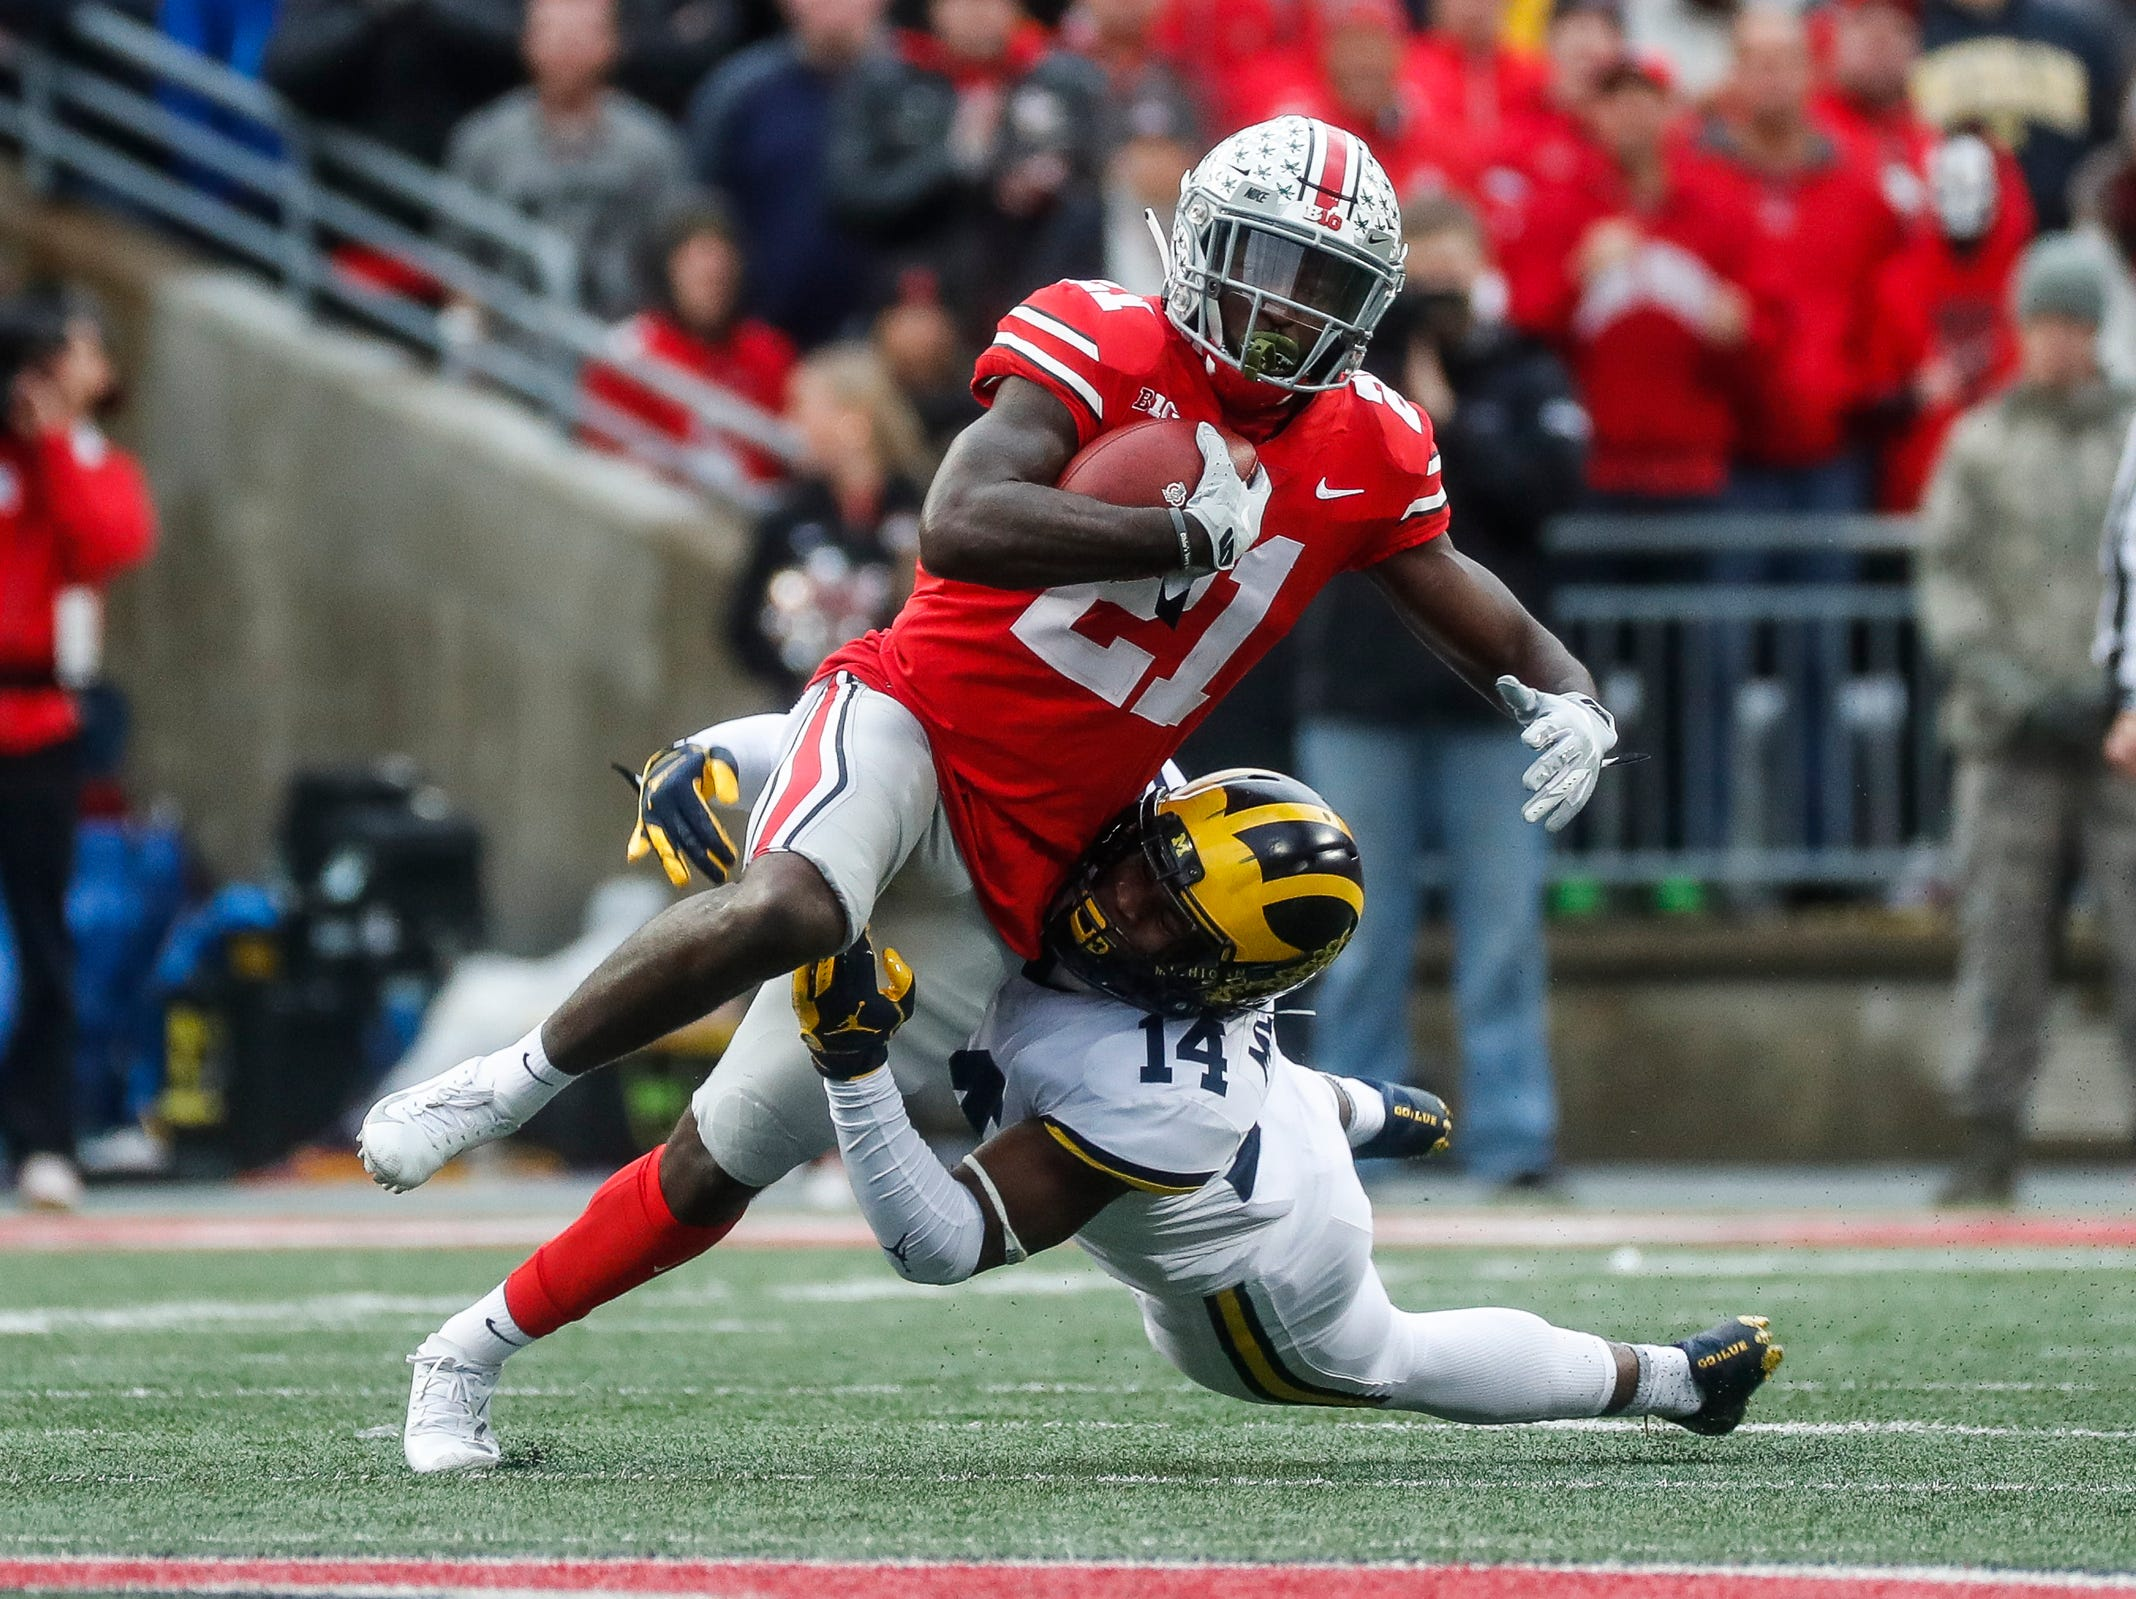 WR Parris Campbell, Ohio State: This isn't a good year to need a receiver as the draft class isn't great, but Campbell was productive playing out of the slot for the Buckeyes and the Lions do need a replacement for Golden Tate.